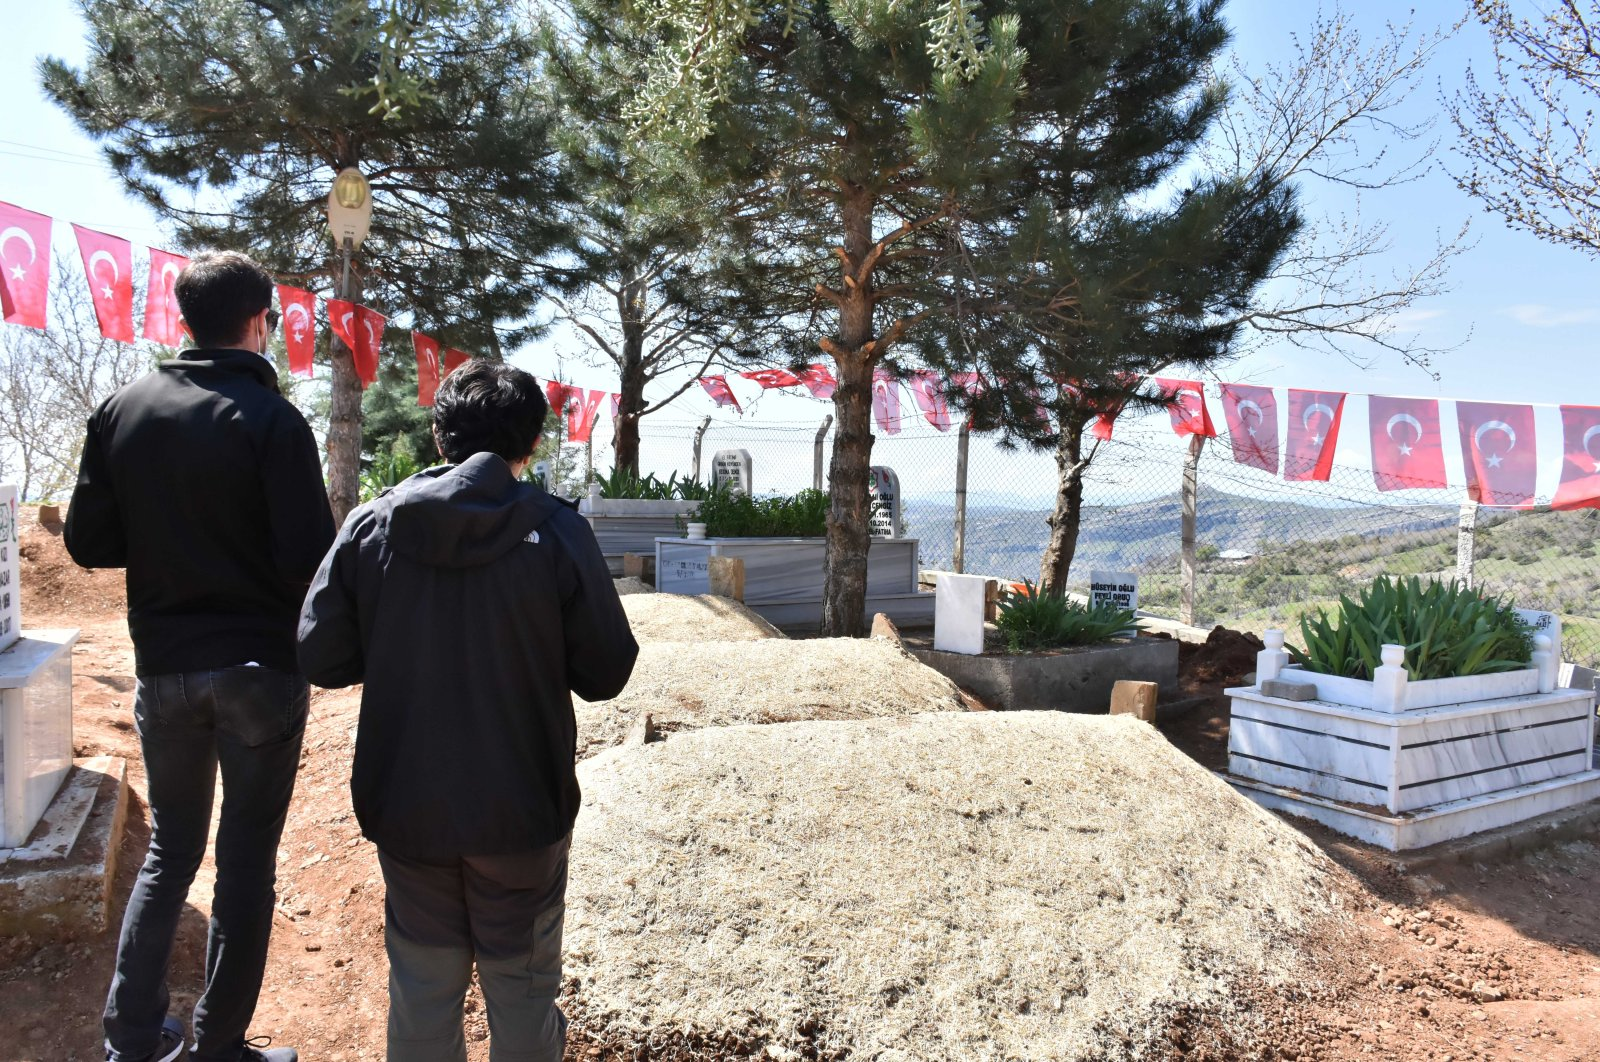 Two men pray by the graveside of victims, in Diyarbakır, Turkey, Thursday, April 9, 2020. (AA Photo)